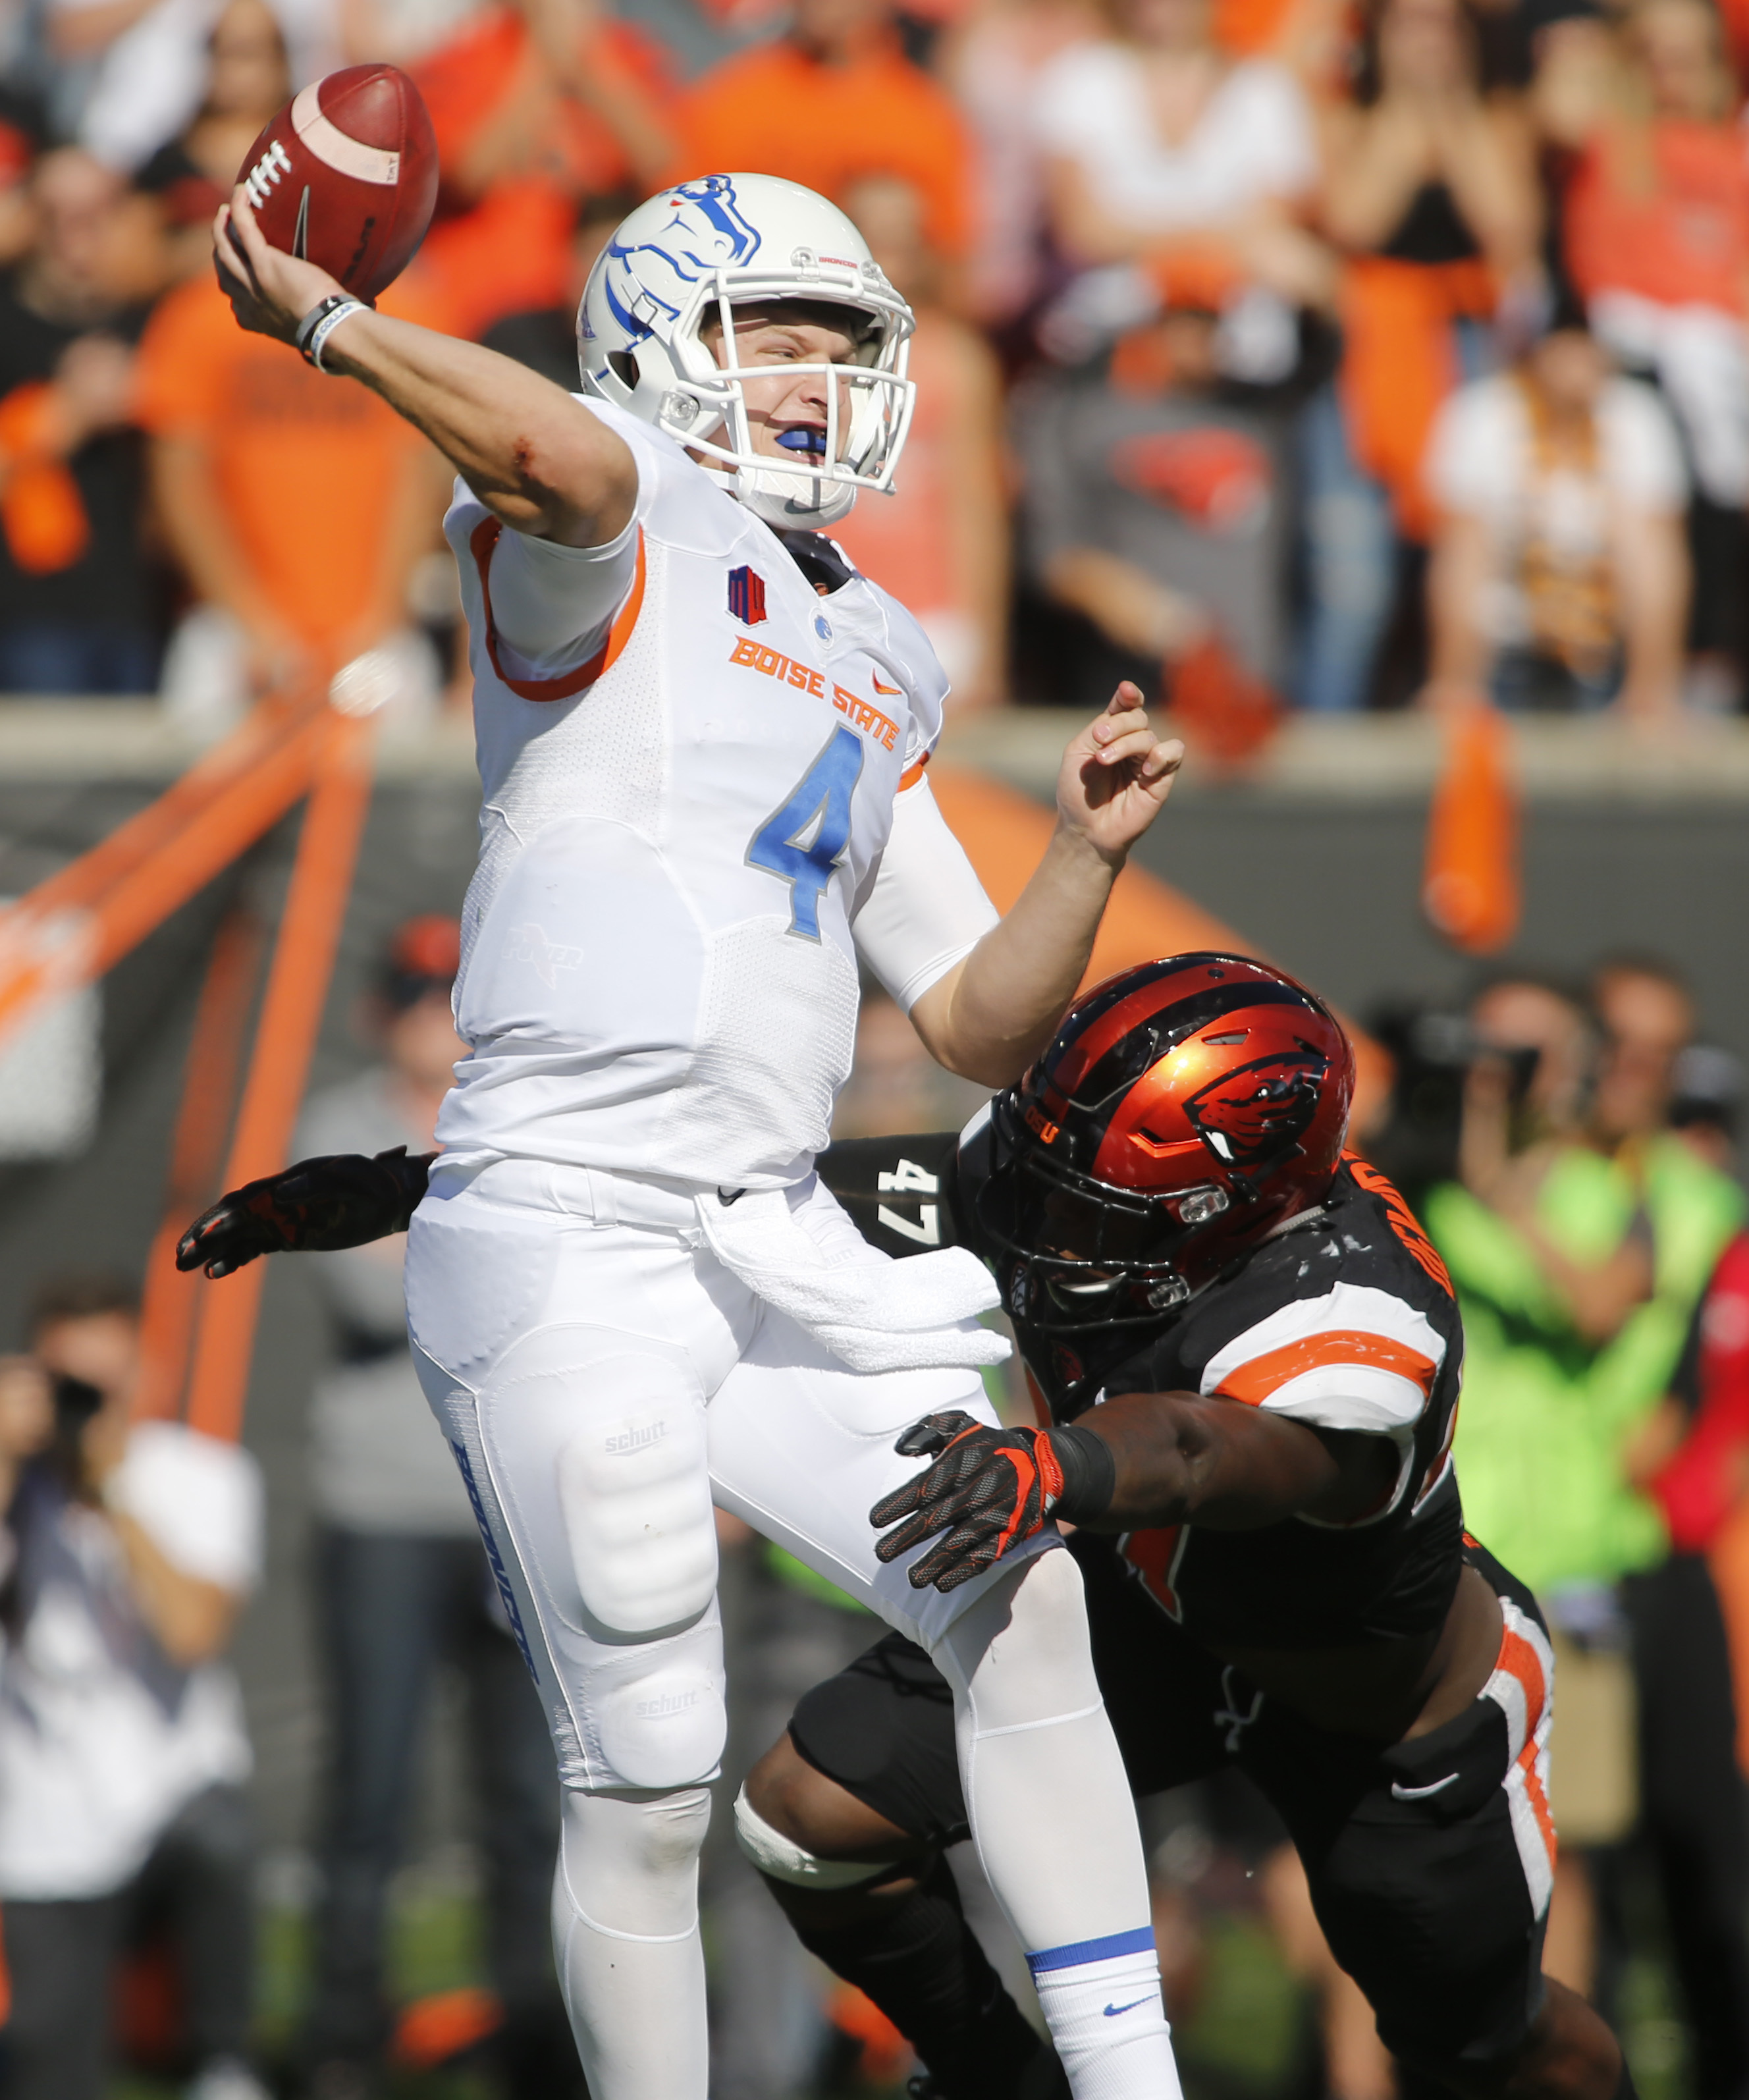 Boise State quarterback Brett Rypien gets a pass off while being pressured by Oregon State's Bright Ugwoegbu in the second half of an NCAA college football game in Corvallis, Ore., on Saturday, Sept. 24, 2016. Boise State won 38-24. (AP Photo/Timothy J. G